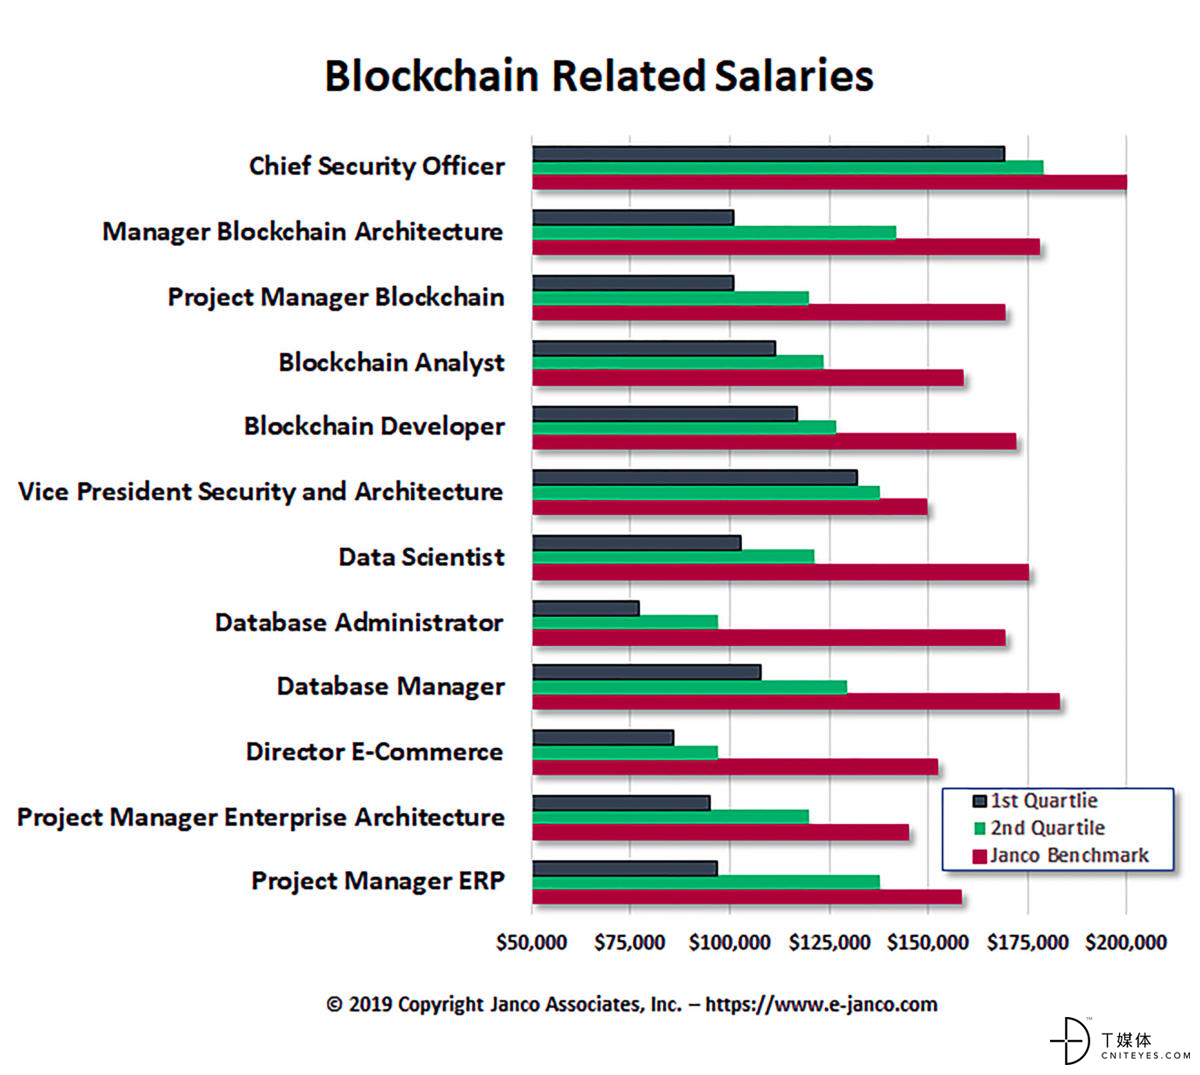 cw blockchain related salaries chart by janco associates 2400x2150